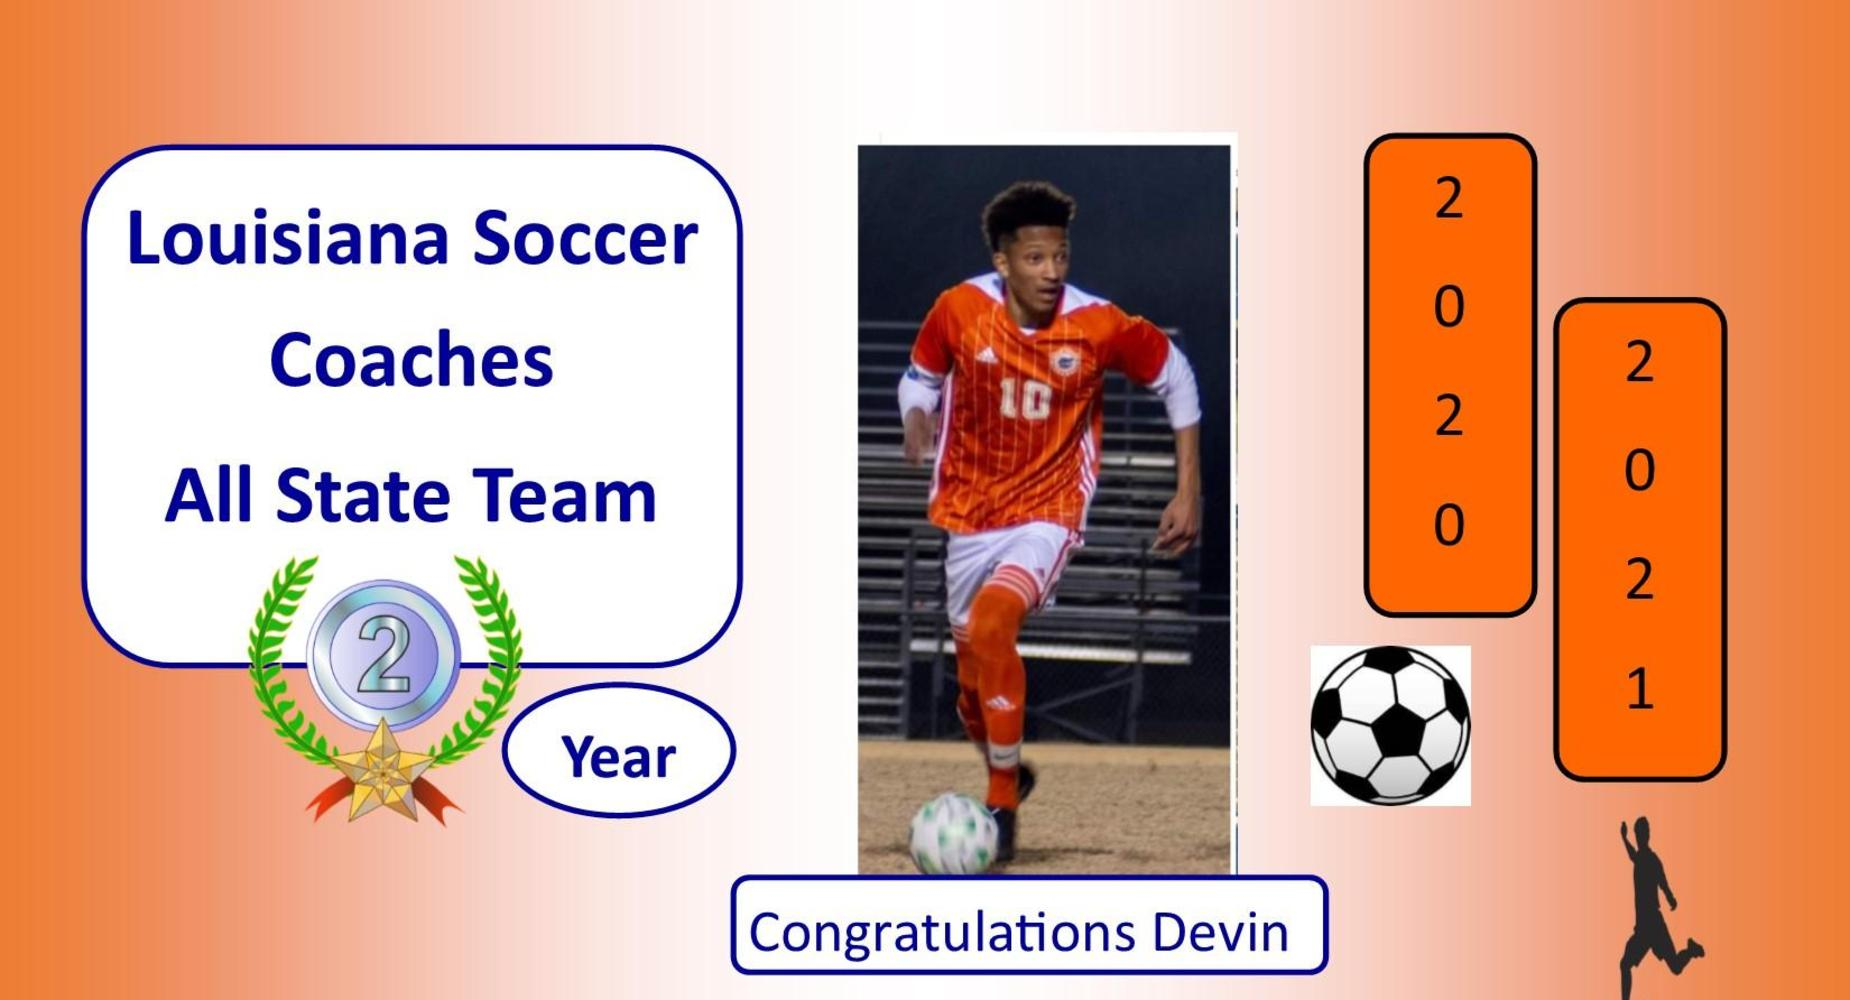 Devin Auzenne was named to the Louisiana Soccer Coaches All State for the 2nd consecutive year.